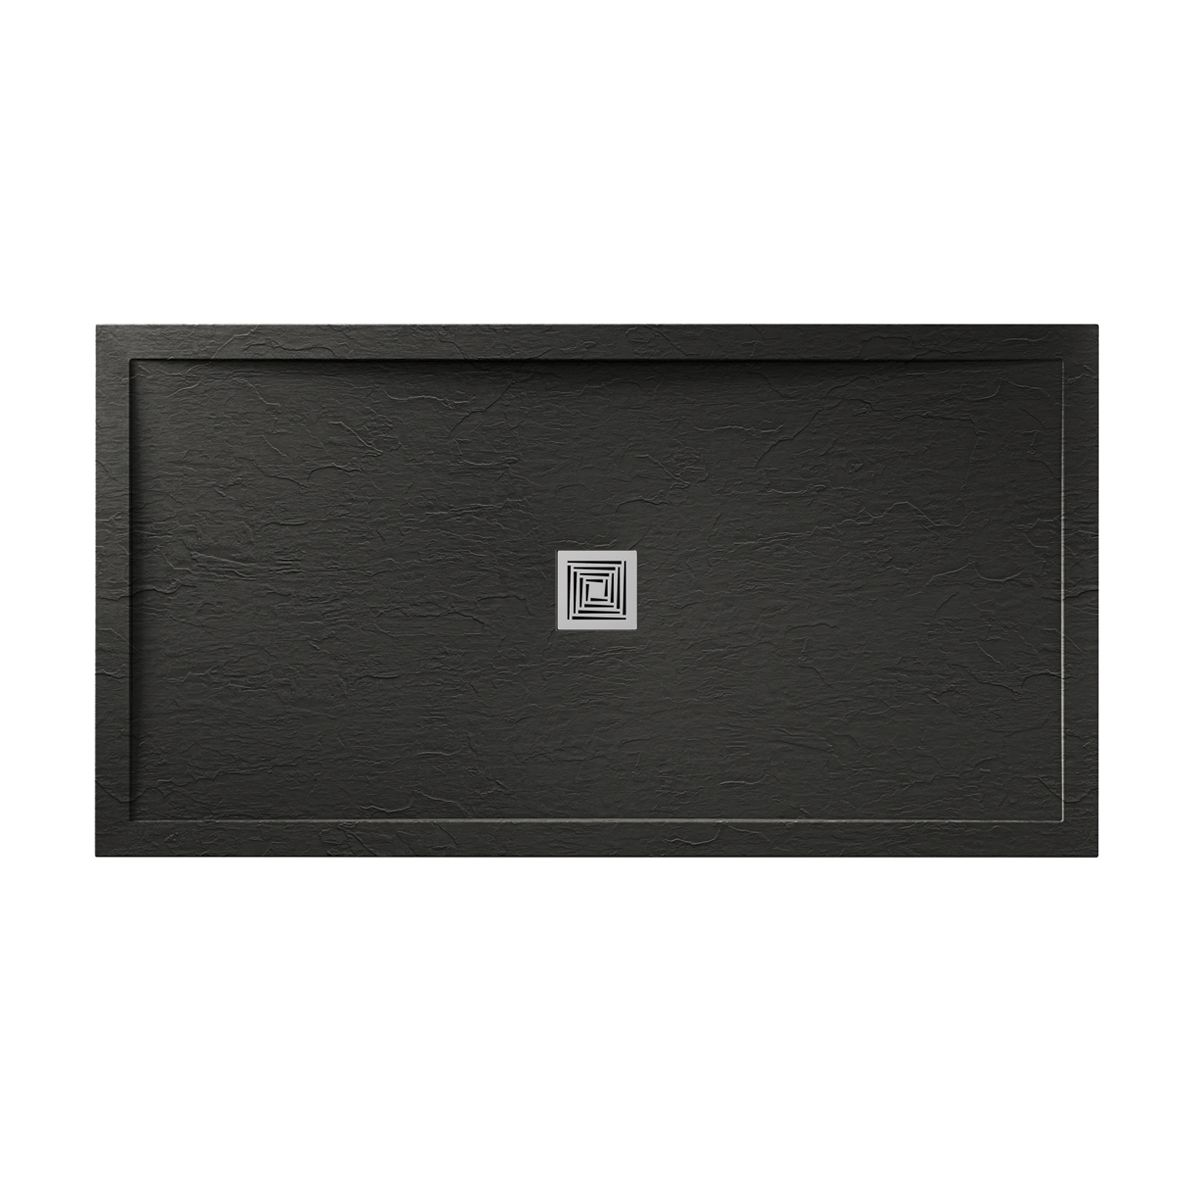 Aquadart Black Slate Shower Tray 1400 x 800